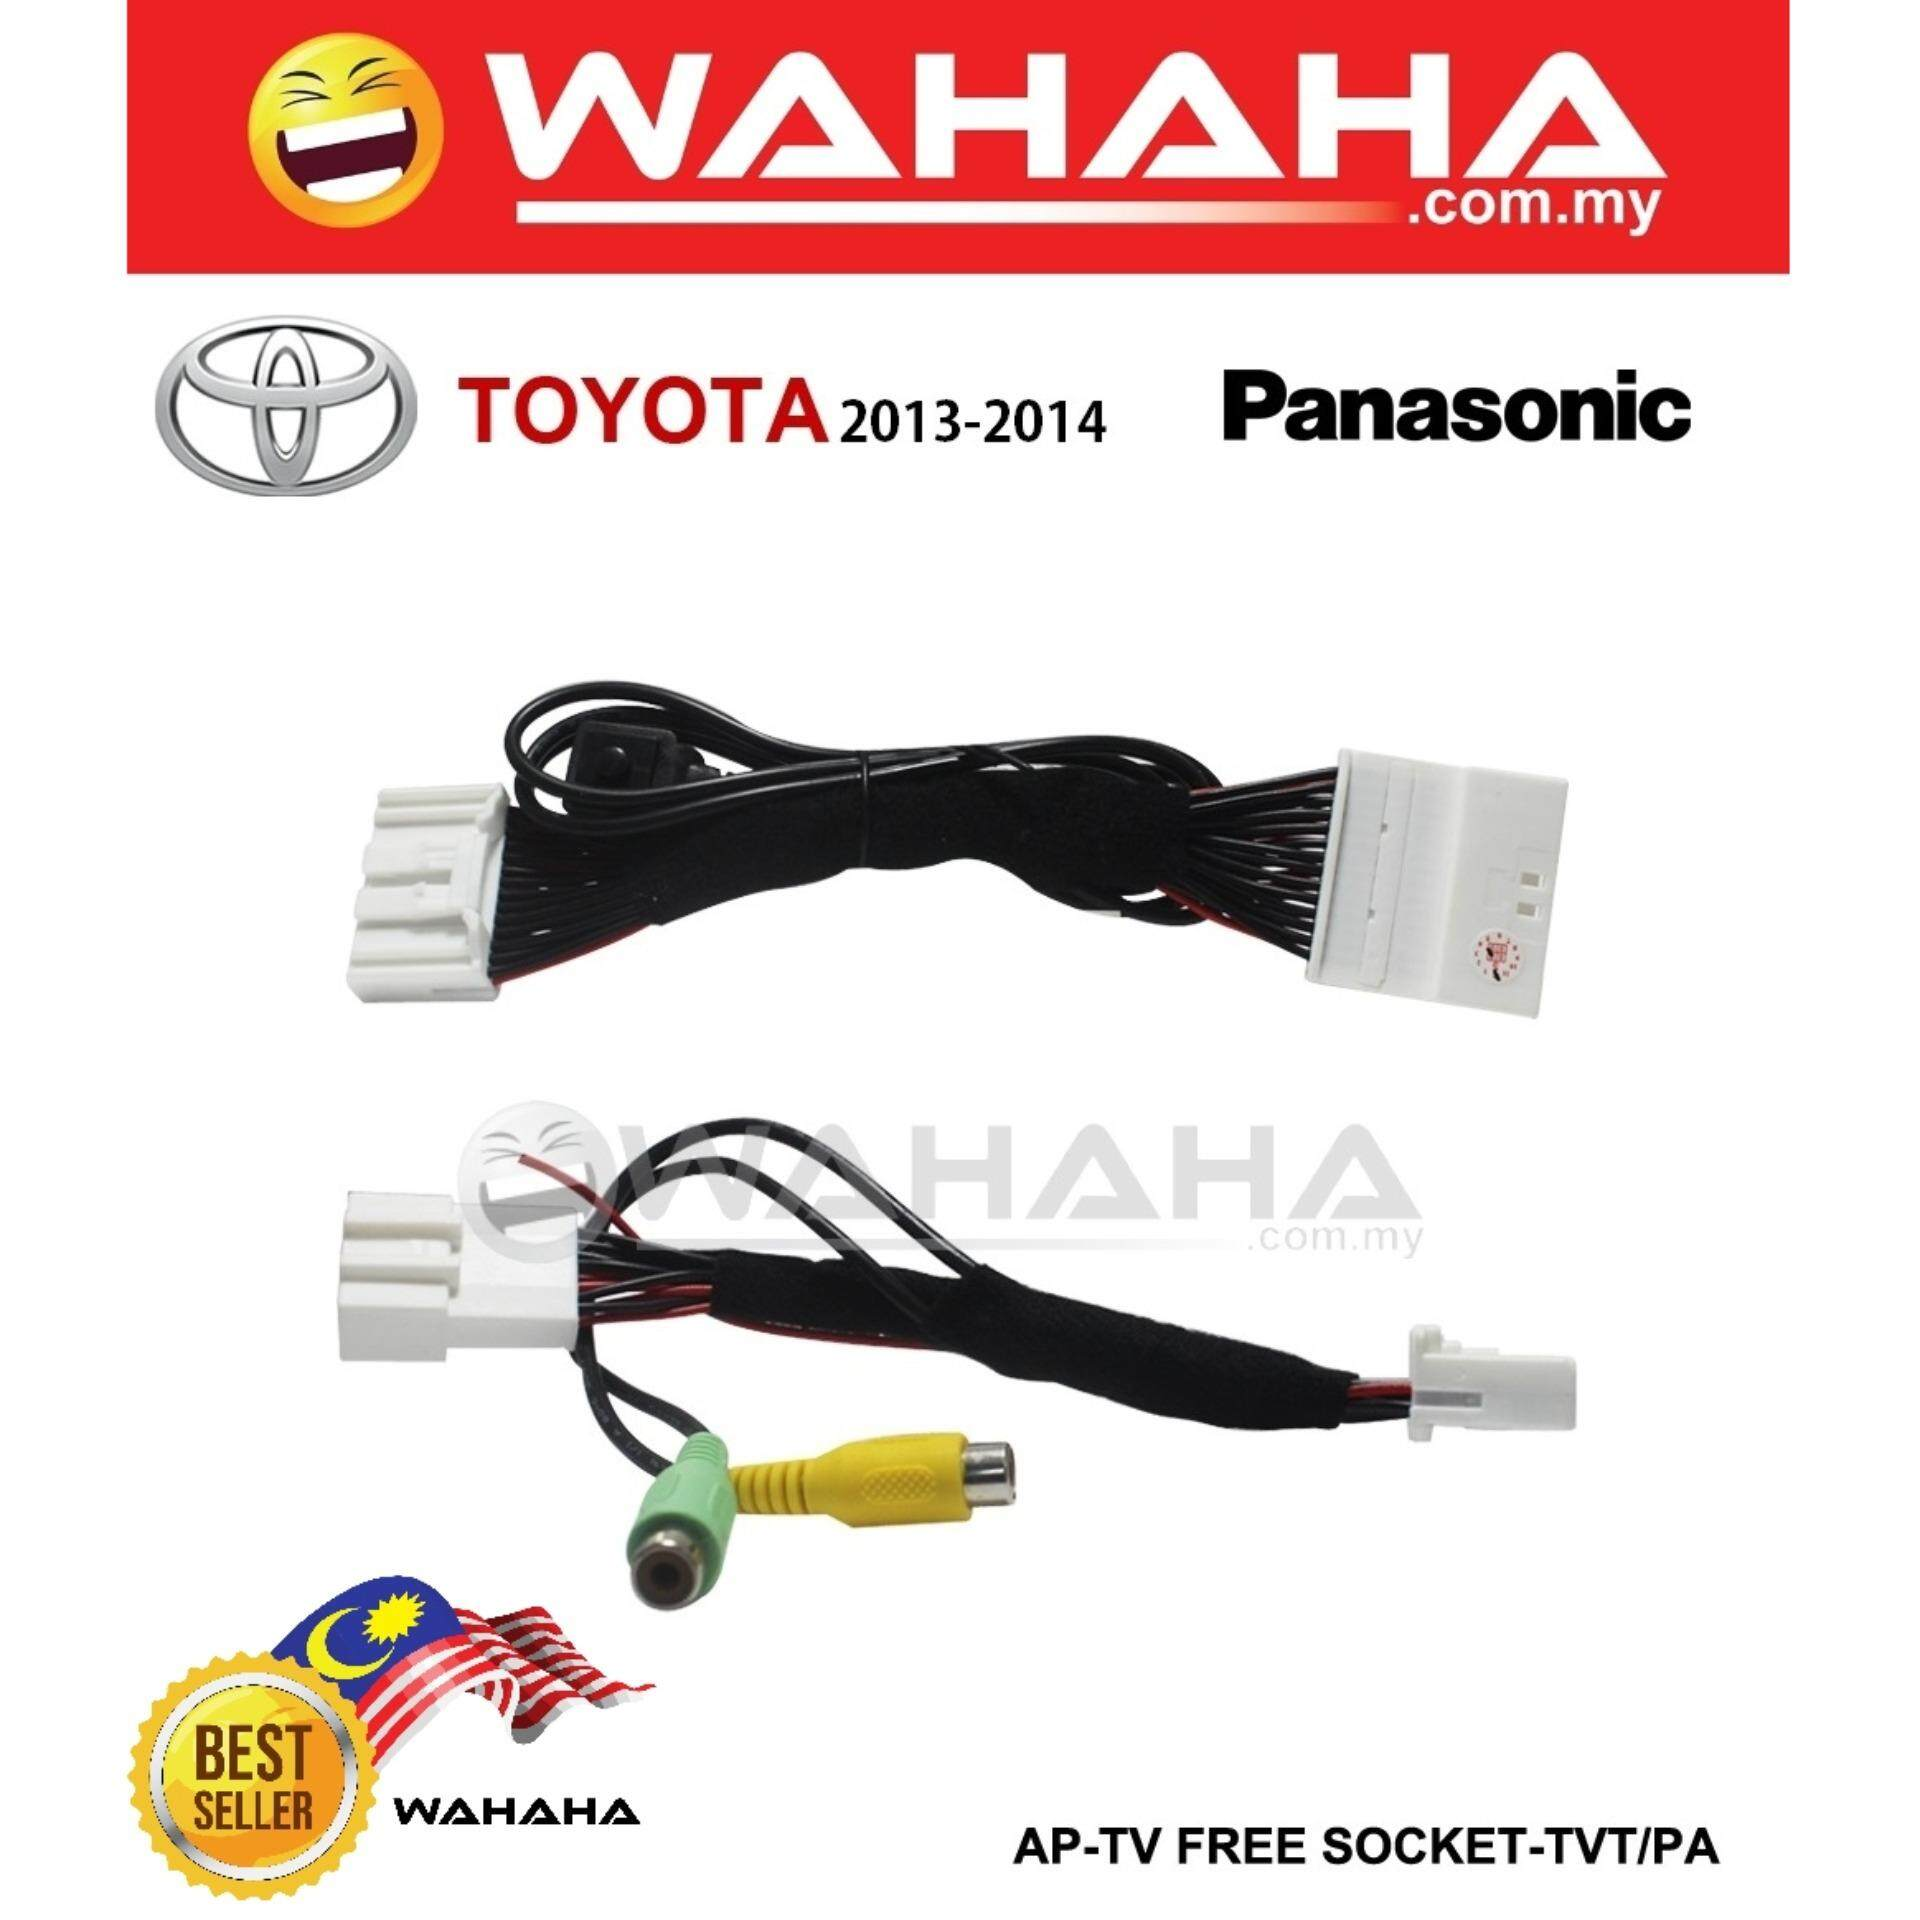 Socket OEM TV Free / Camera IN / AV OUT / Toyota AL-484 (Panasonic) - CG-AL-484-TY